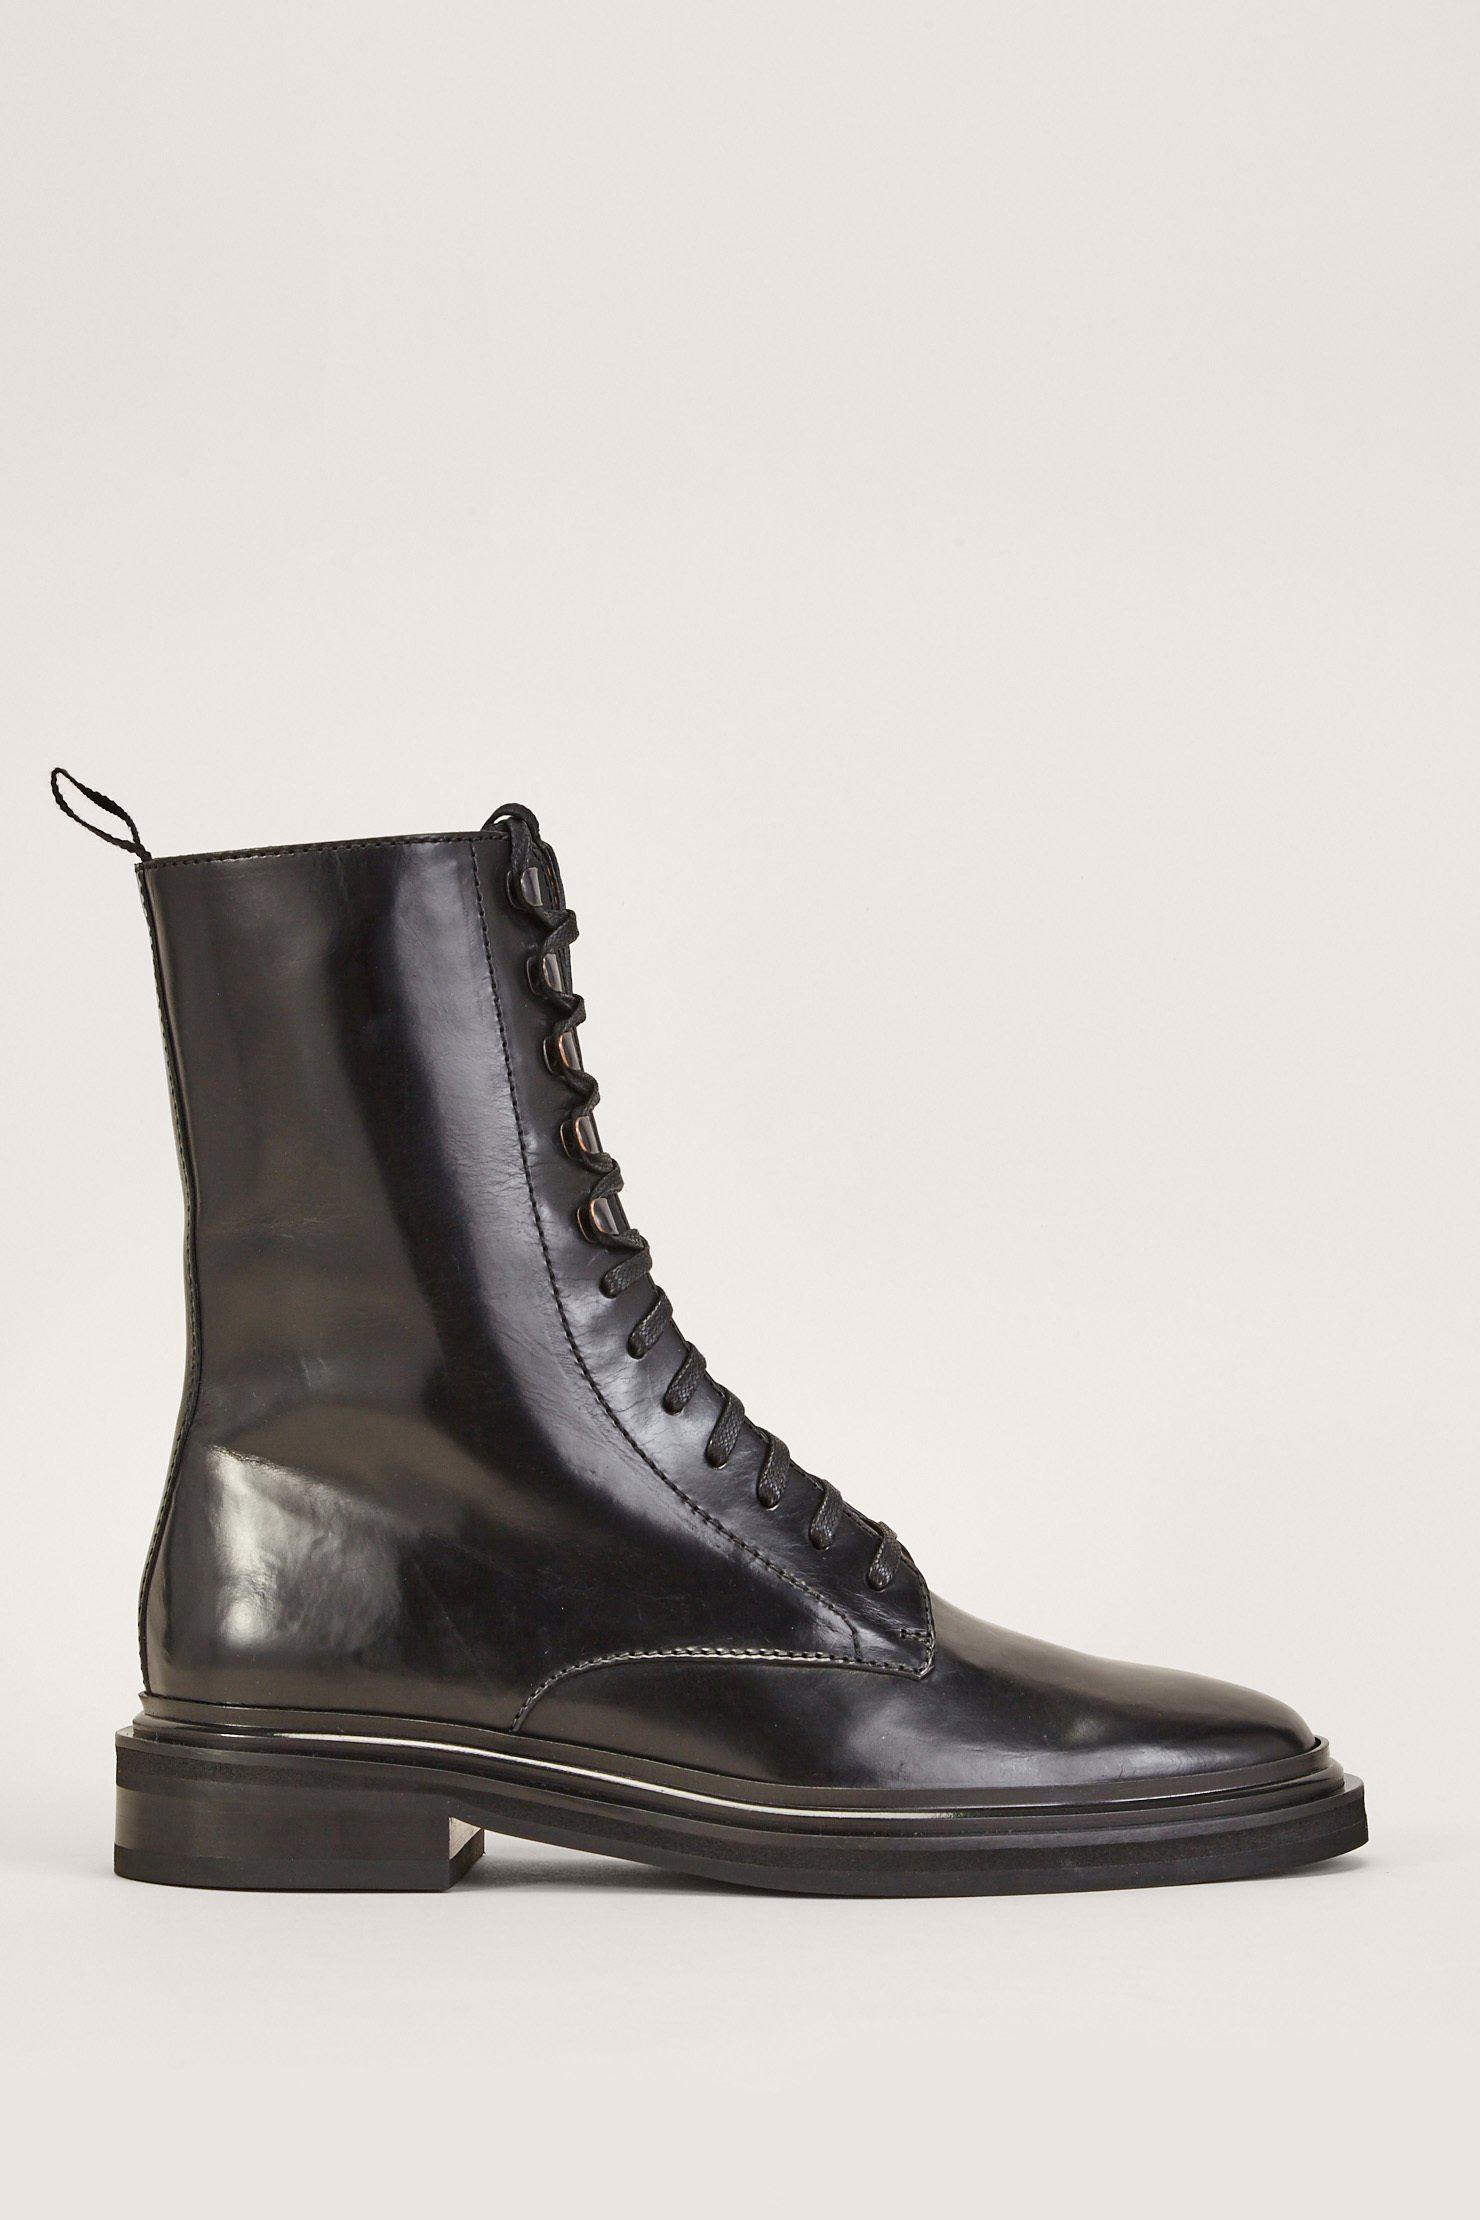 Veronique Branquinho Patent Leather Ankle Boots